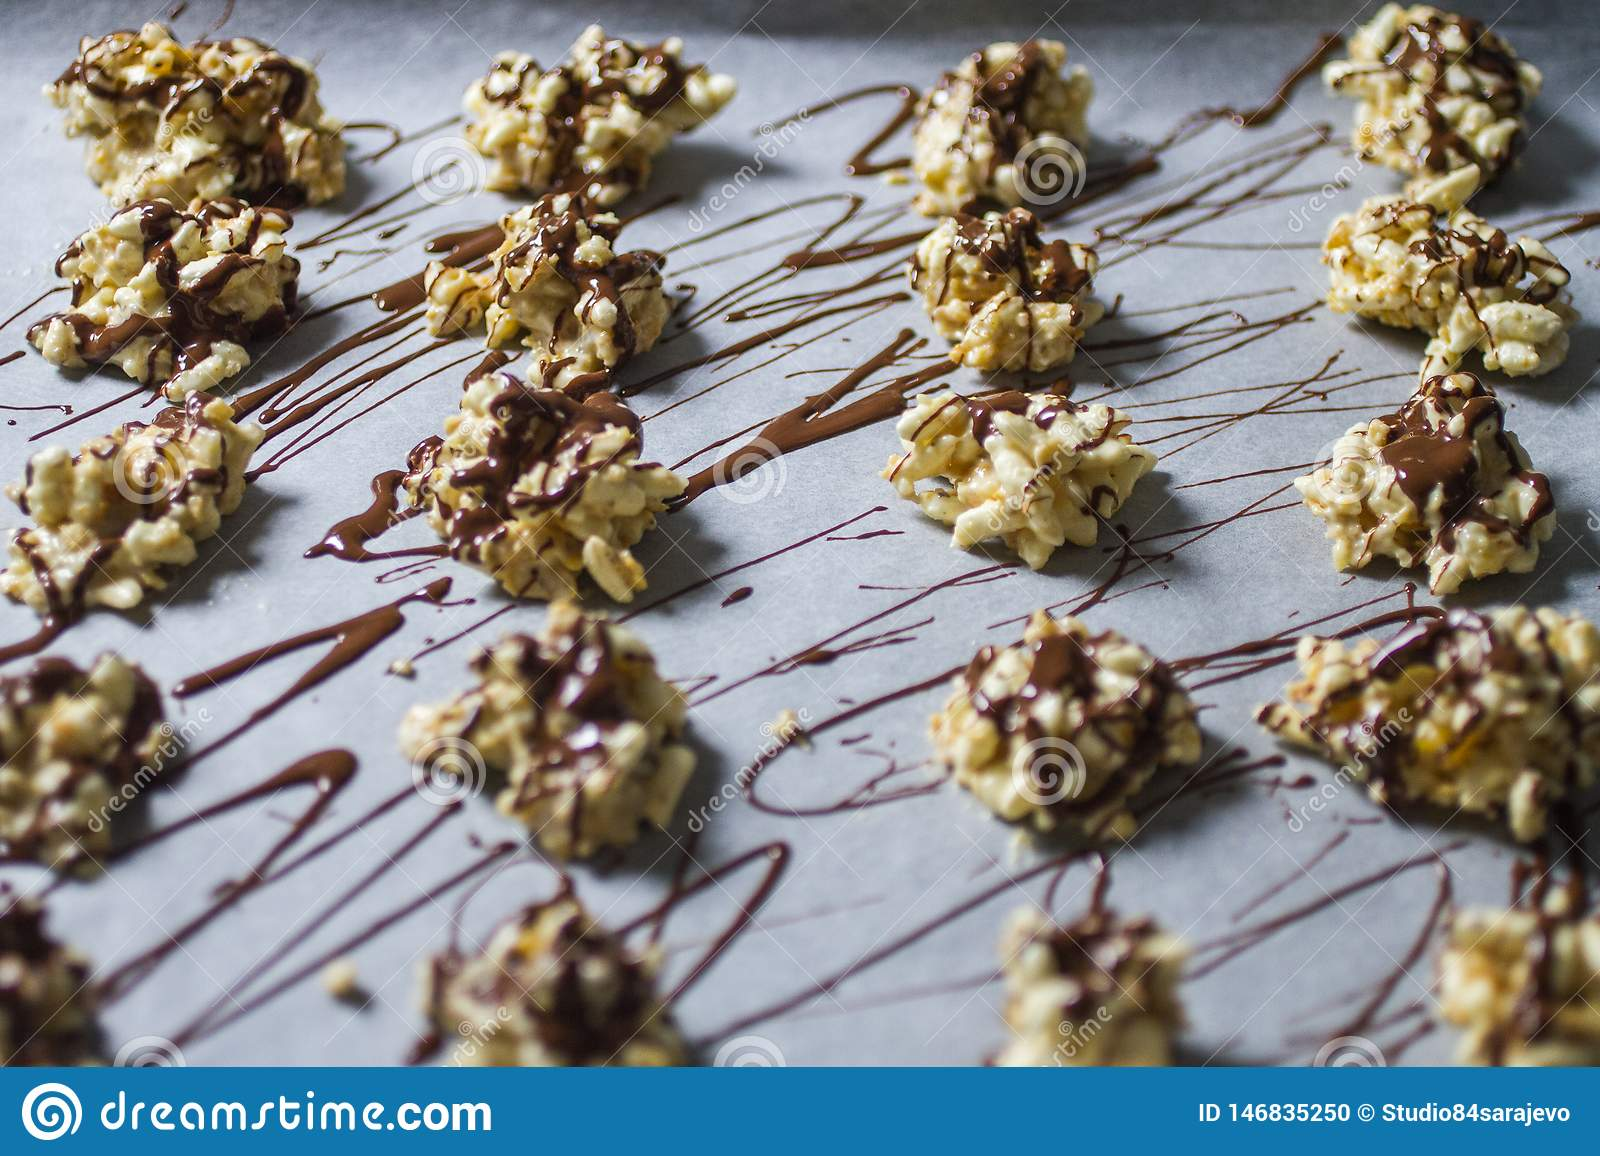 White Chocolate Energy Bites Lined Up on Cooking Parchment Paper